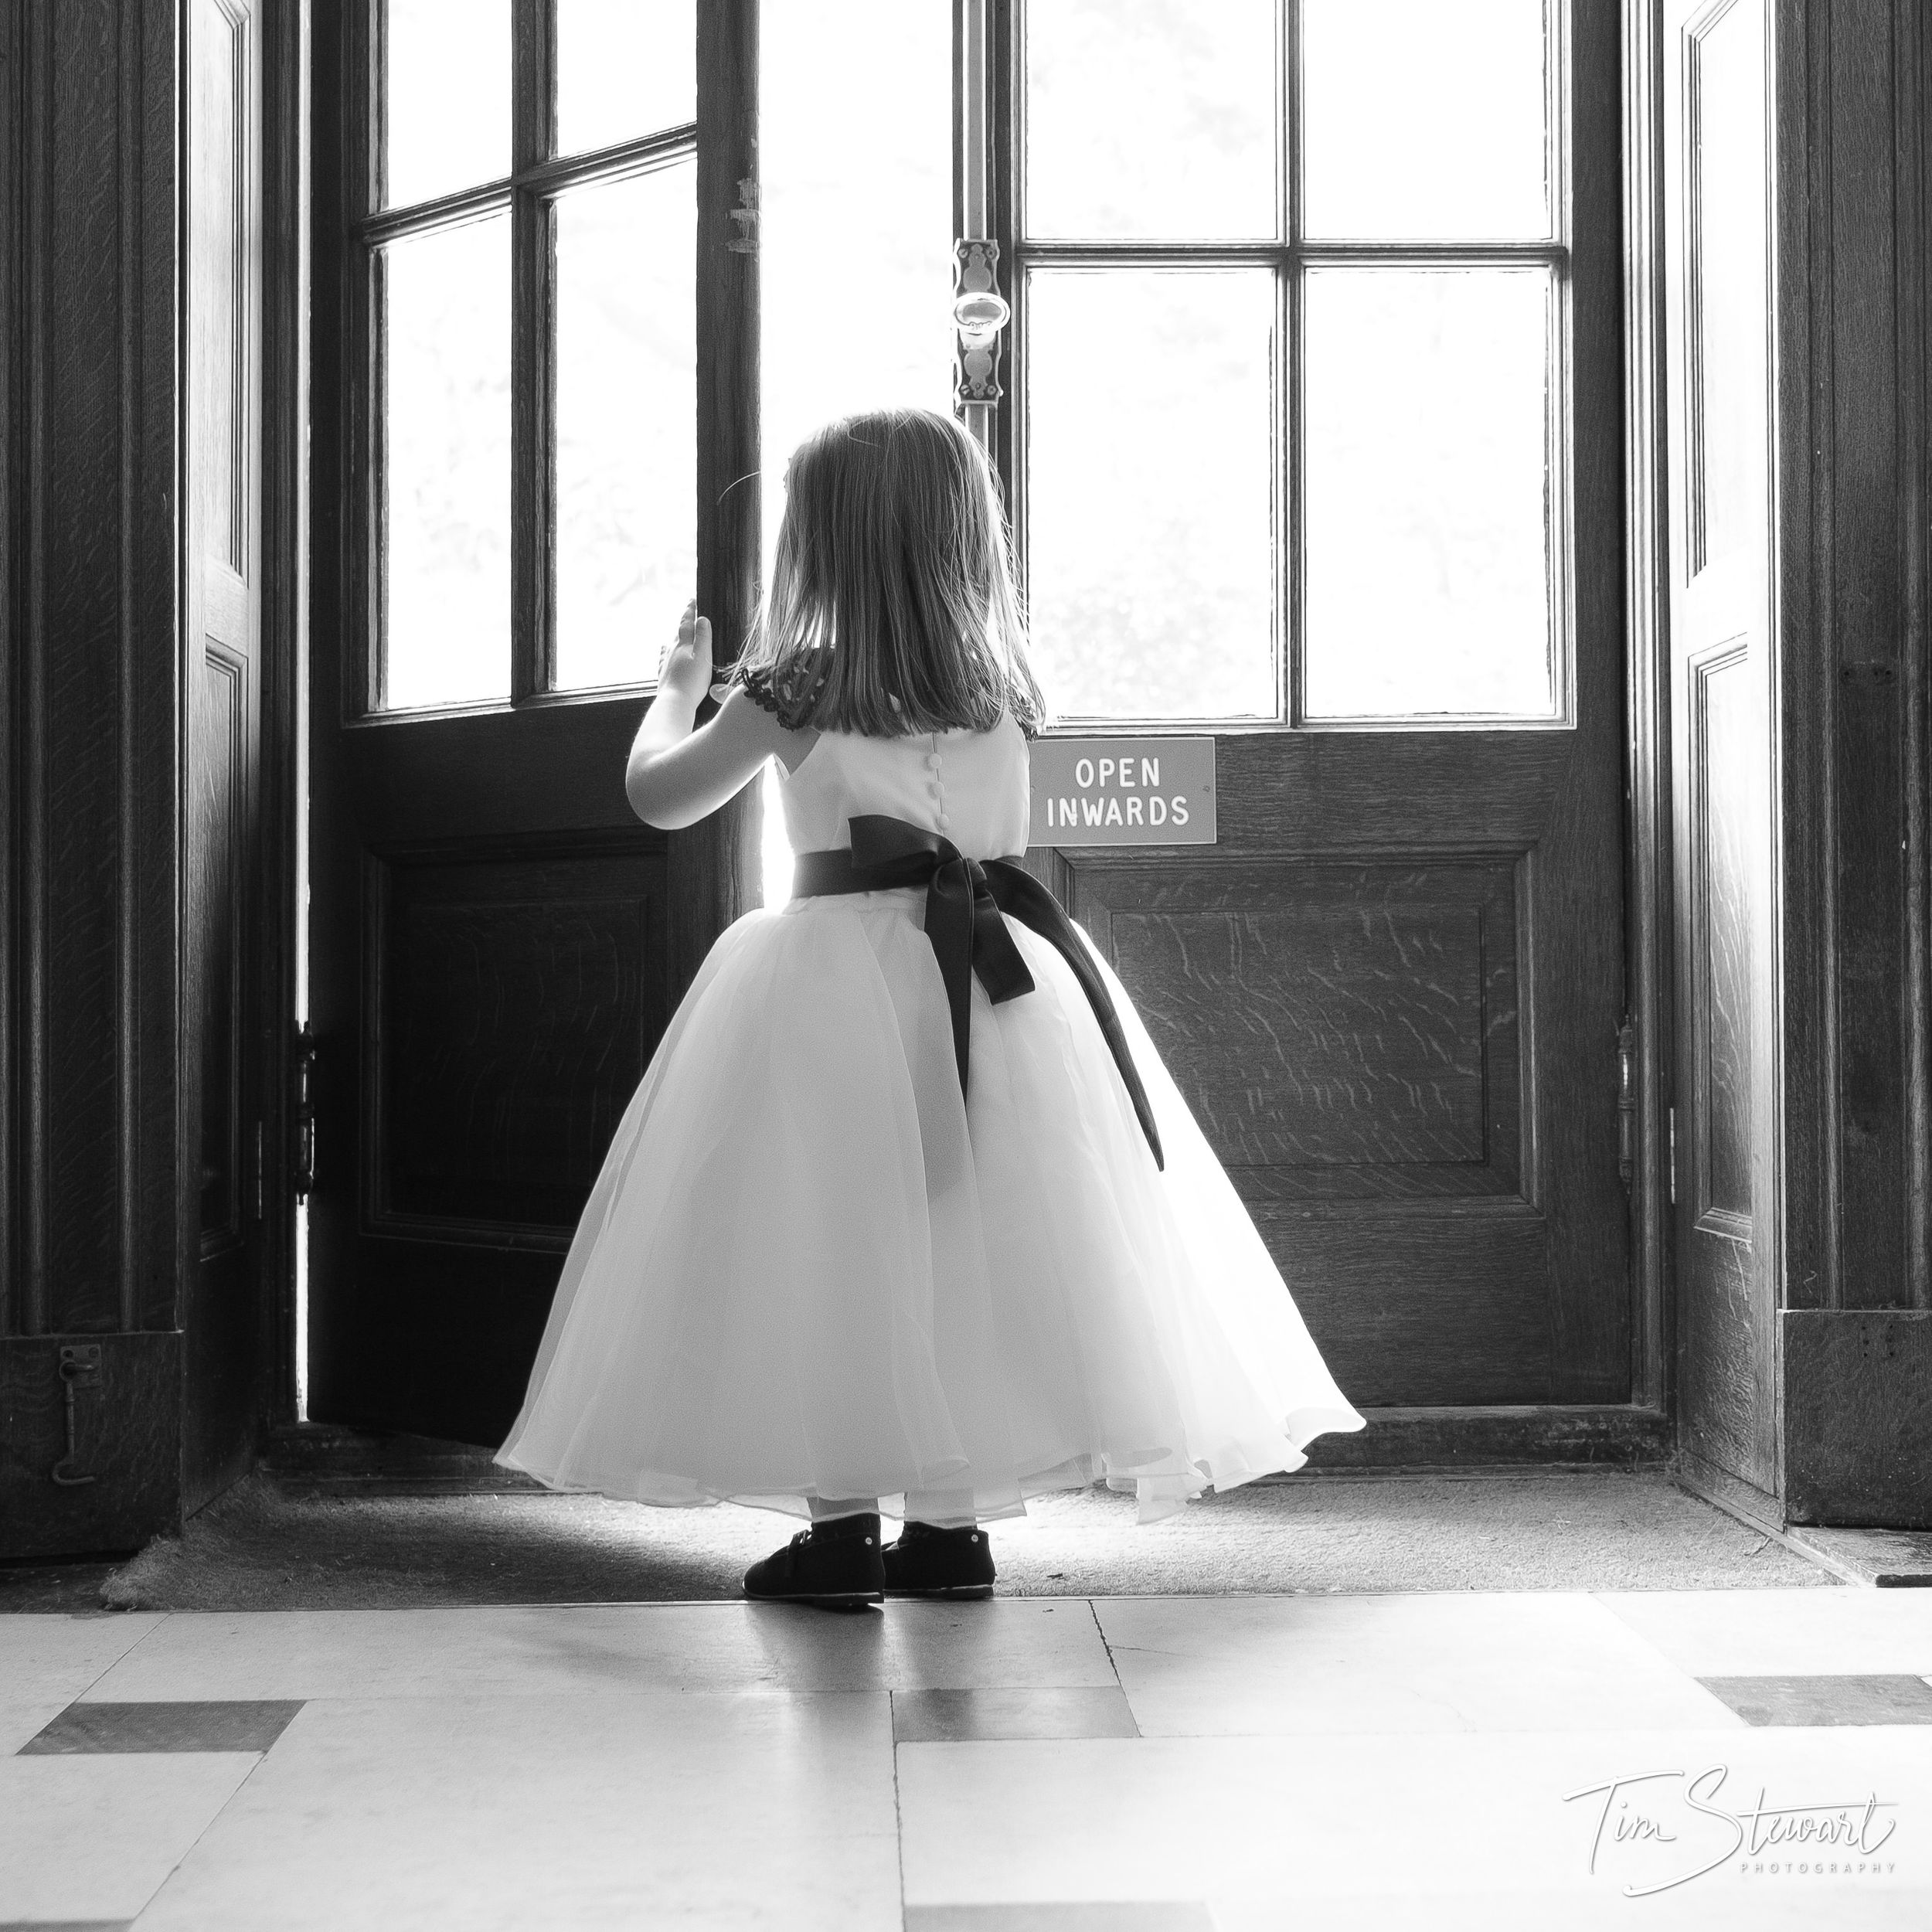 Little flower girl opening a big door at Crathorne Hall, Yarm. In black and white.